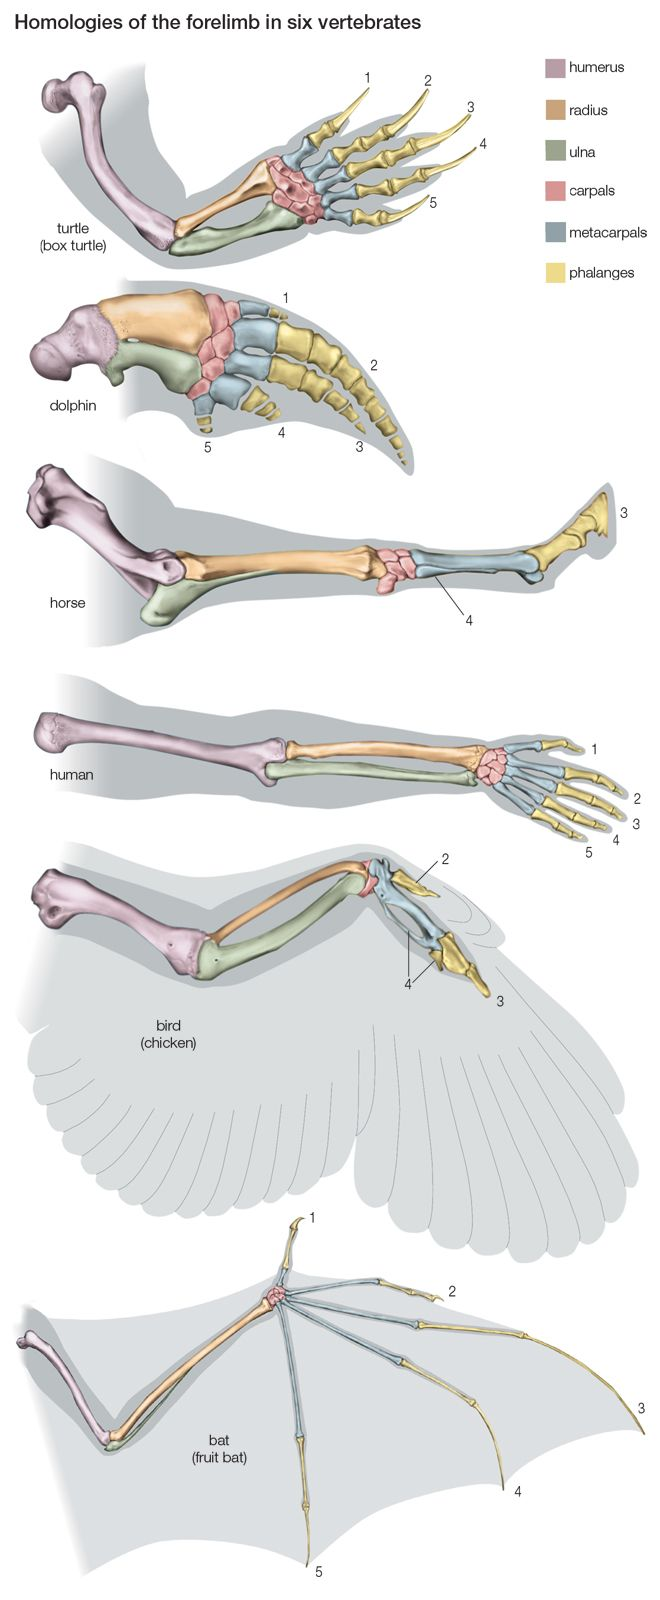 homology: homologies of the forelimb among vertebrates... I'm pretty sure this is straight from a textbook...